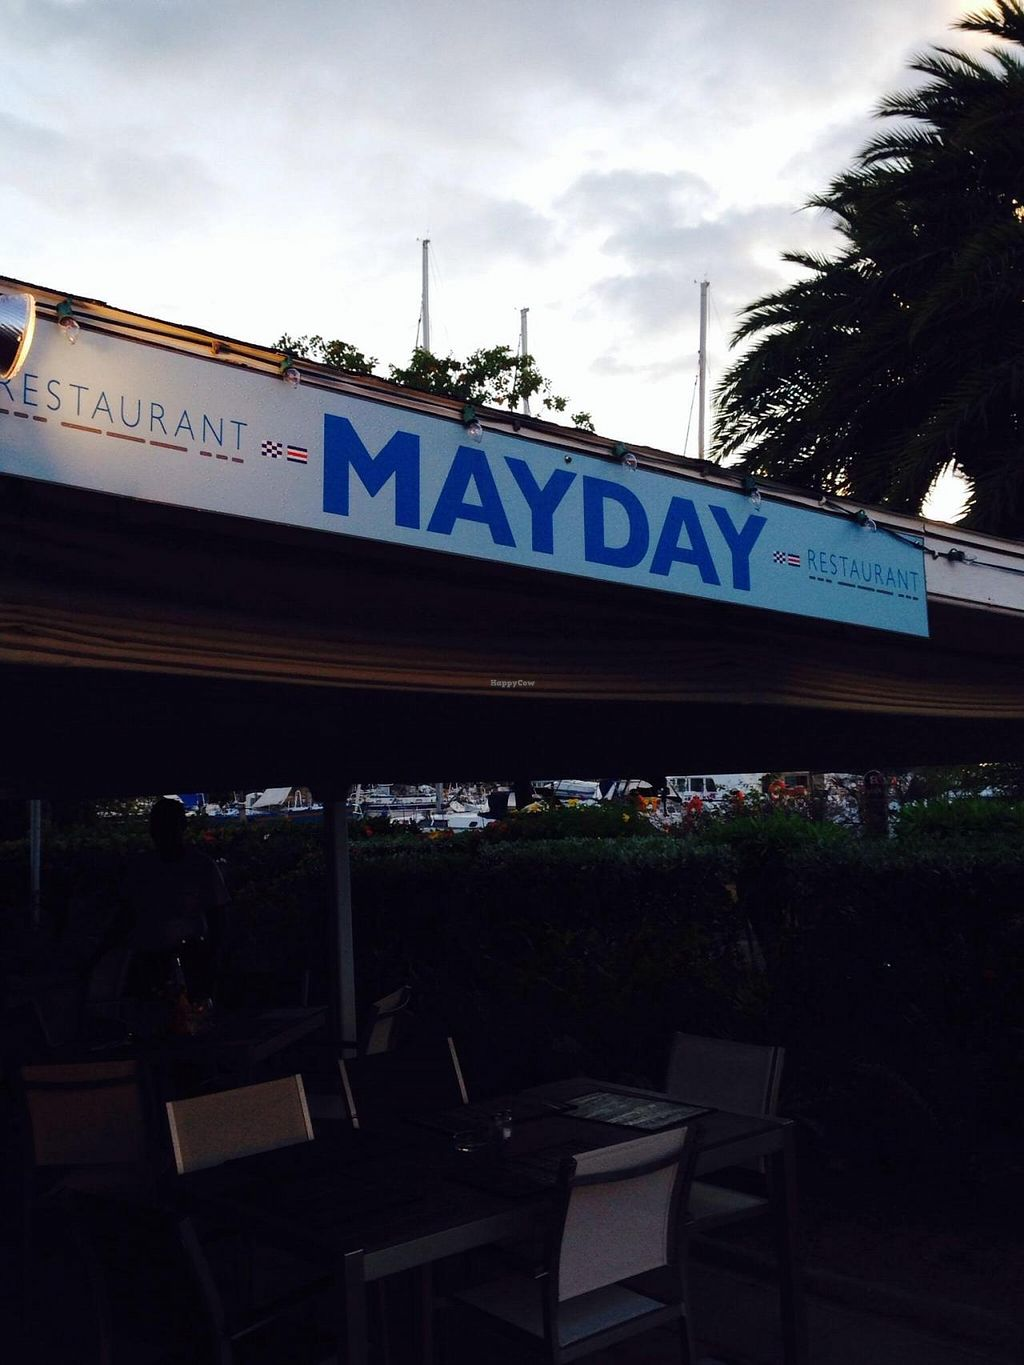 """Photo of Mayday  by <a href=""""/members/profile/cnclewis"""">cnclewis</a> <br/>Mayday Restaurant at Jolly Harbour Marina, Antigua <br/> April 28, 2014  - <a href='/contact/abuse/image/46810/68841'>Report</a>"""